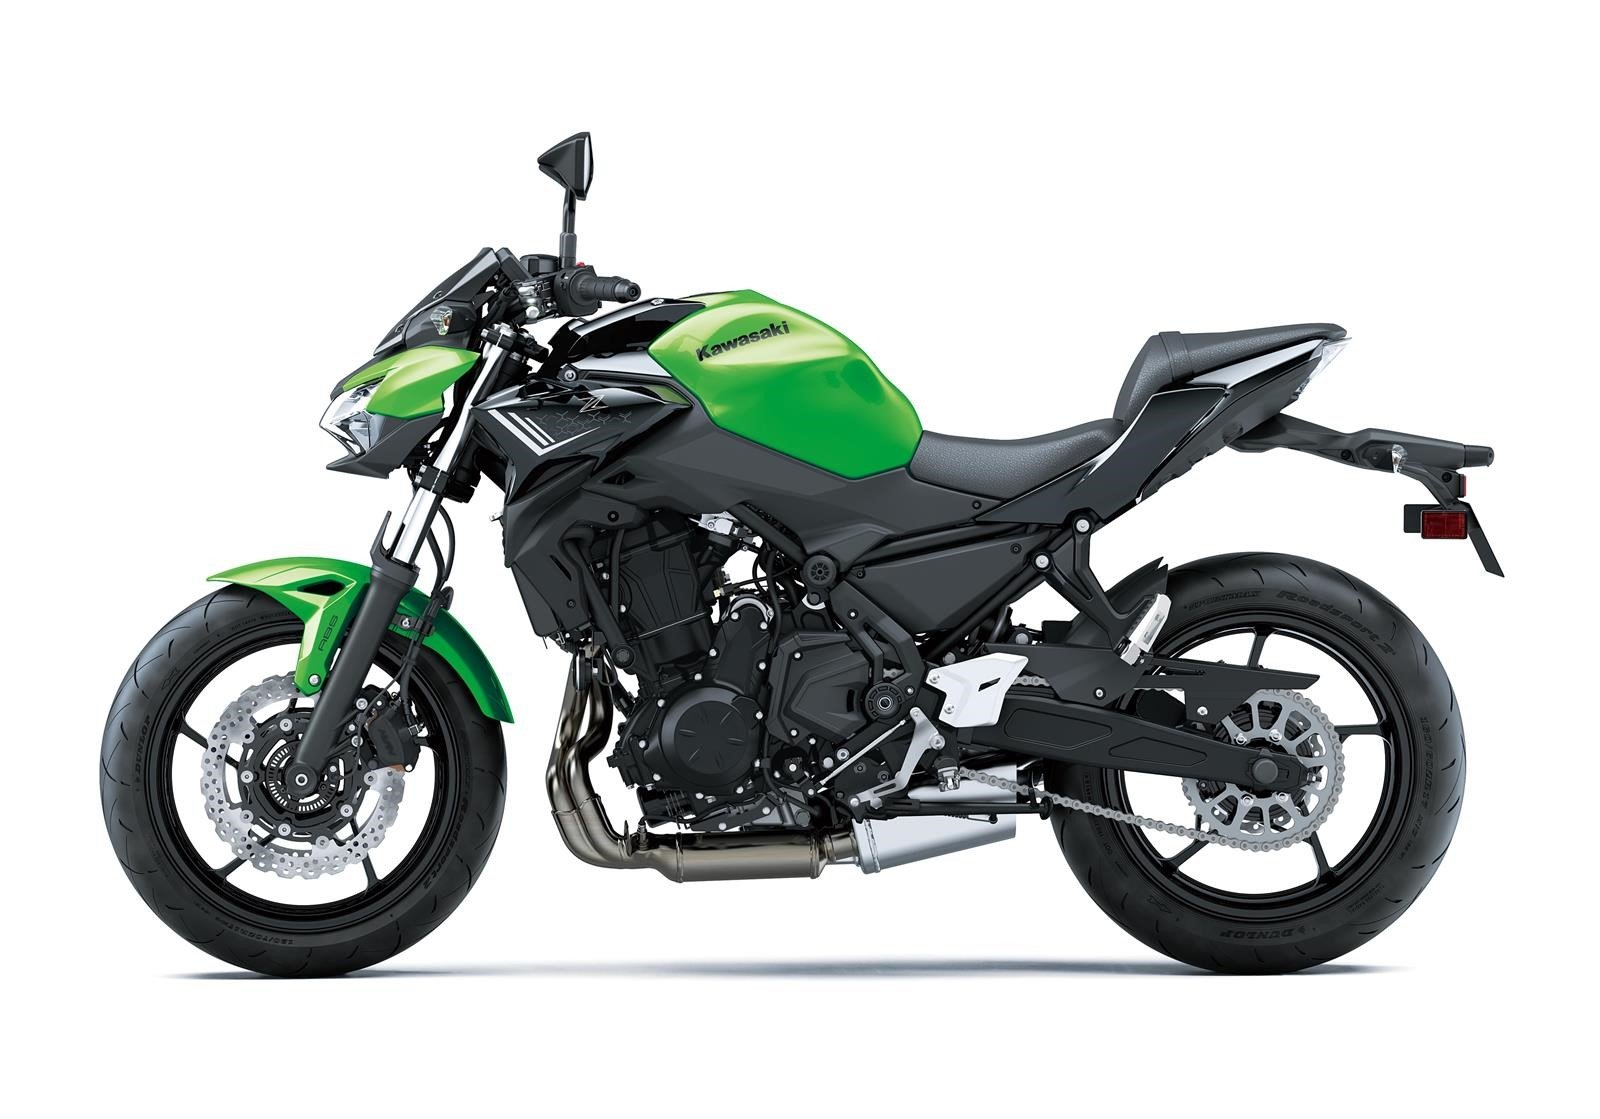 New 2020 Kawasaki Z650 ABS*3 Yrs 0% APR & FREE Delivery* For Sale (picture 3 of 6)